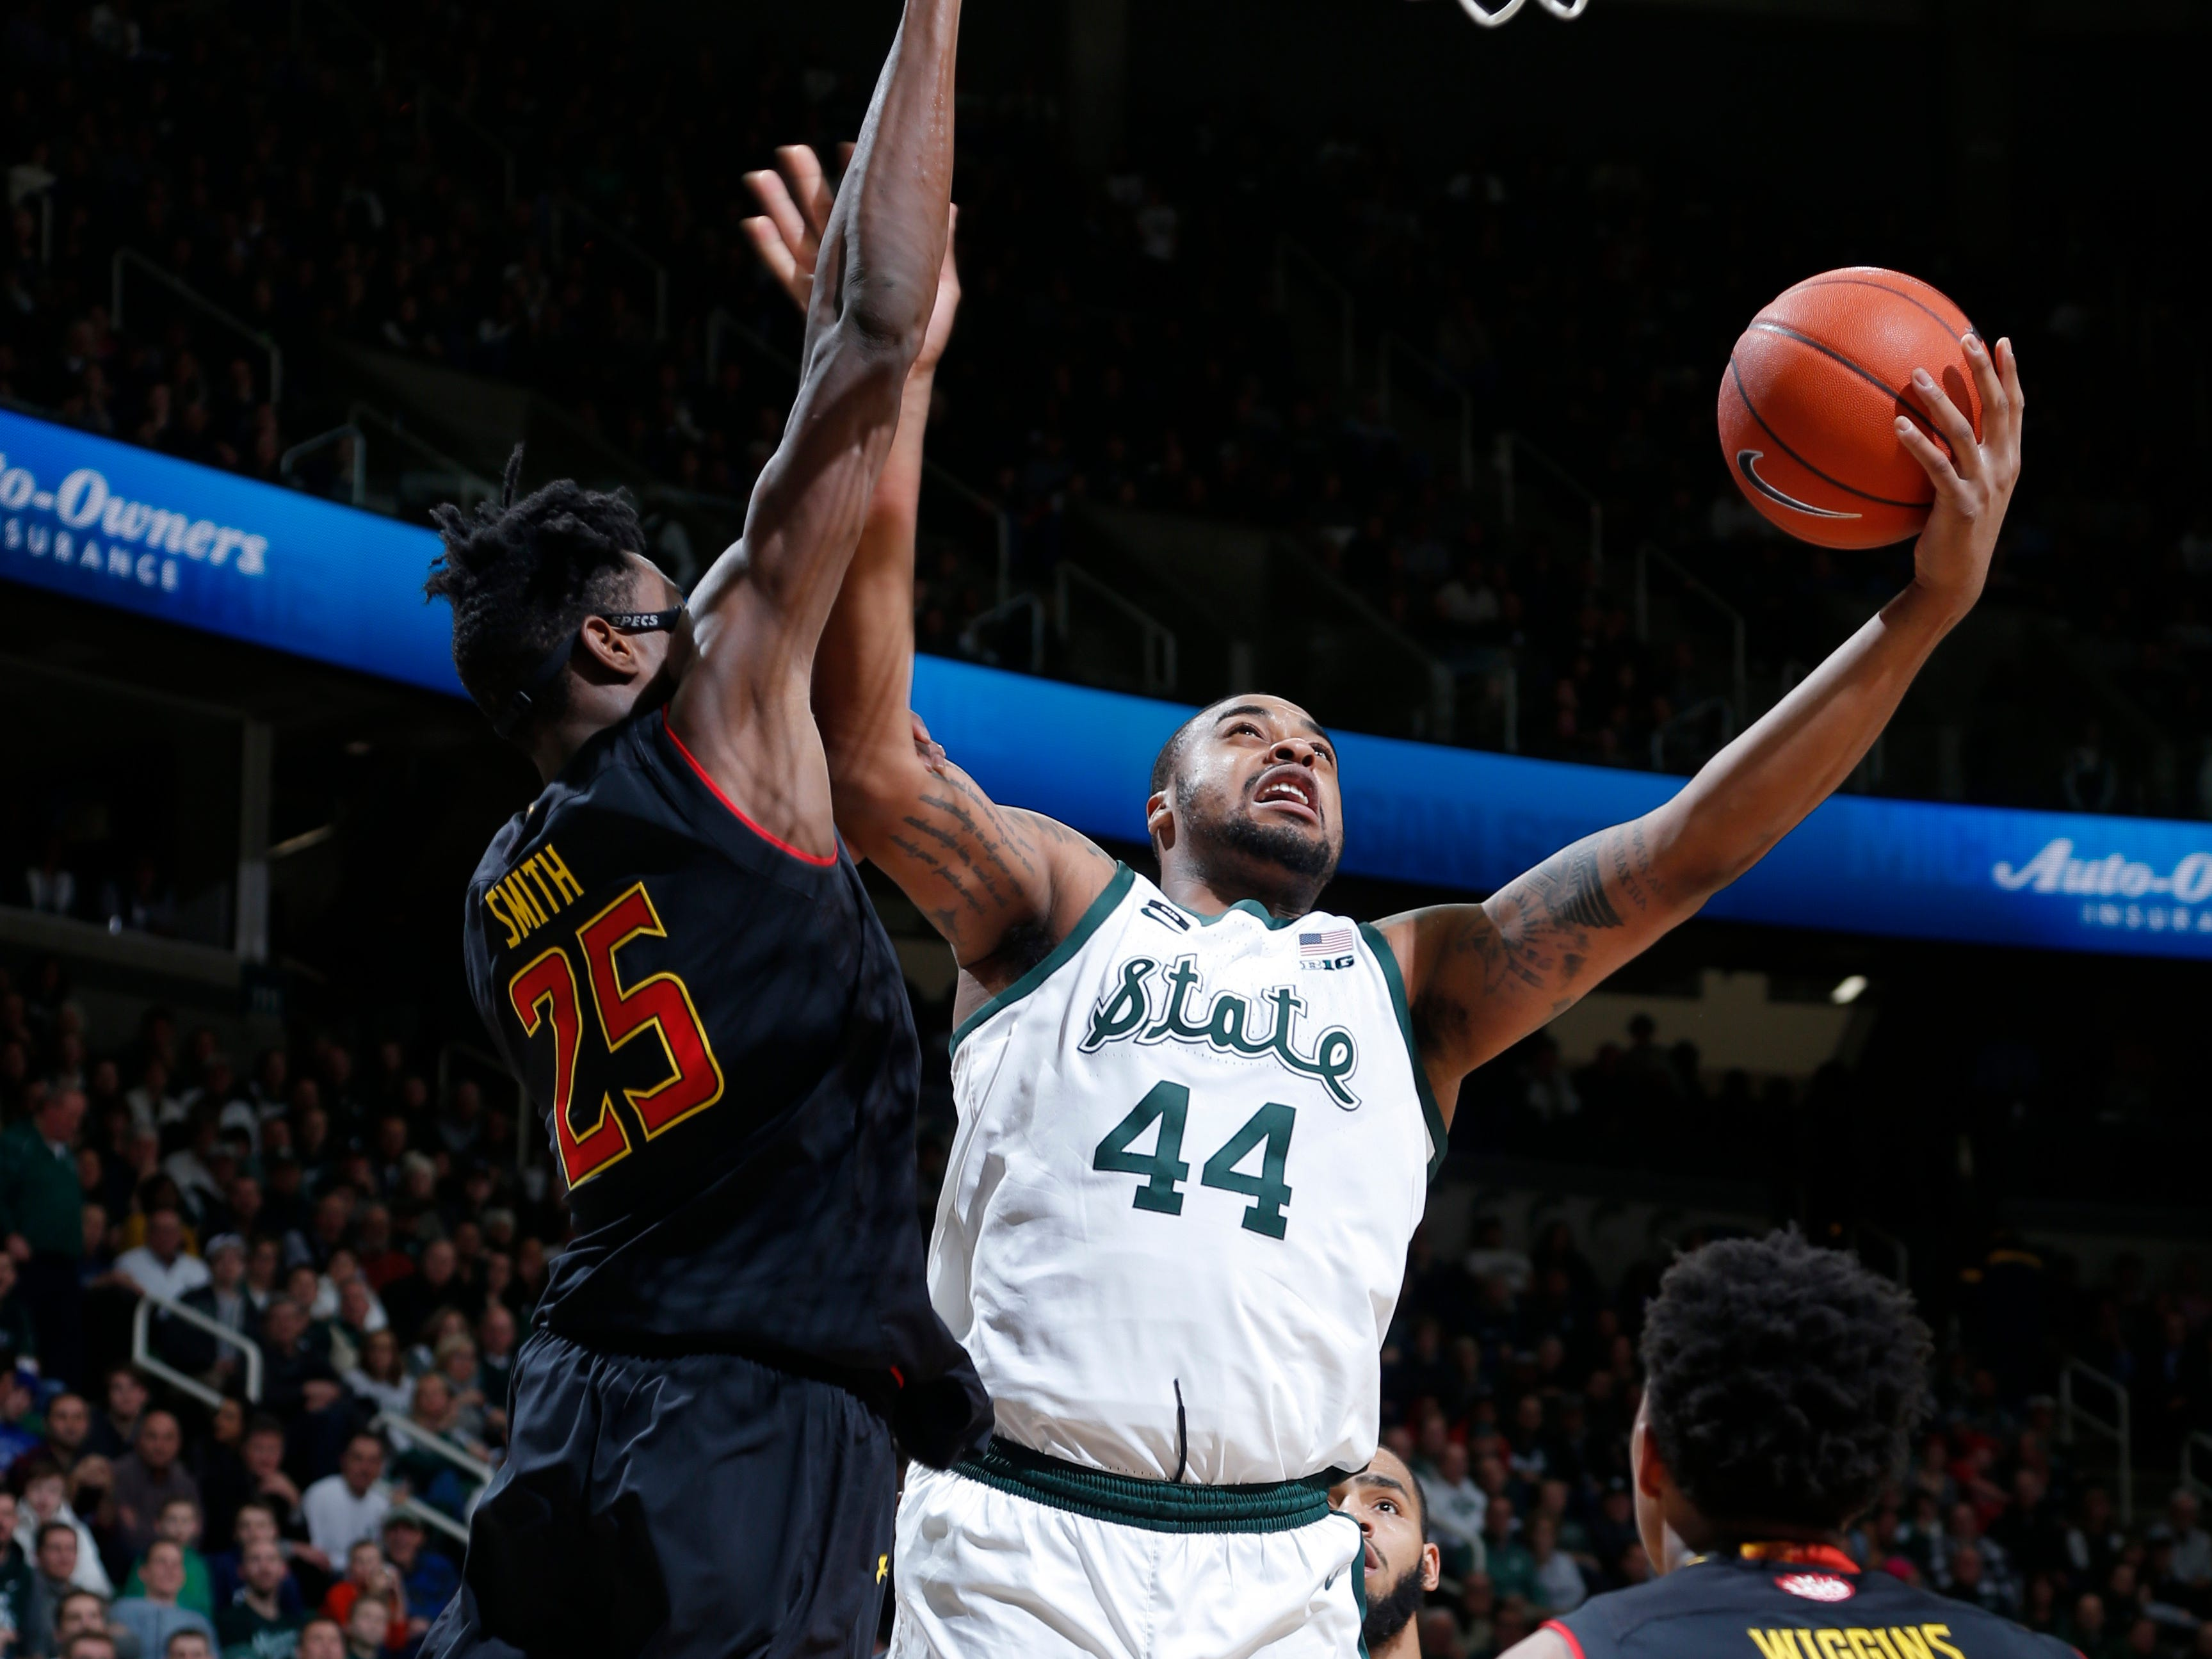 Michigan State's Nick Ward, center, puts up a shot against Maryland's Jalen Smith, left, and Aaron Wiggins (2) during the second half of an NCAA college basketball game, Monday, Jan. 21, 2019, in East Lansing, Mich. Michigan State won 69-55.